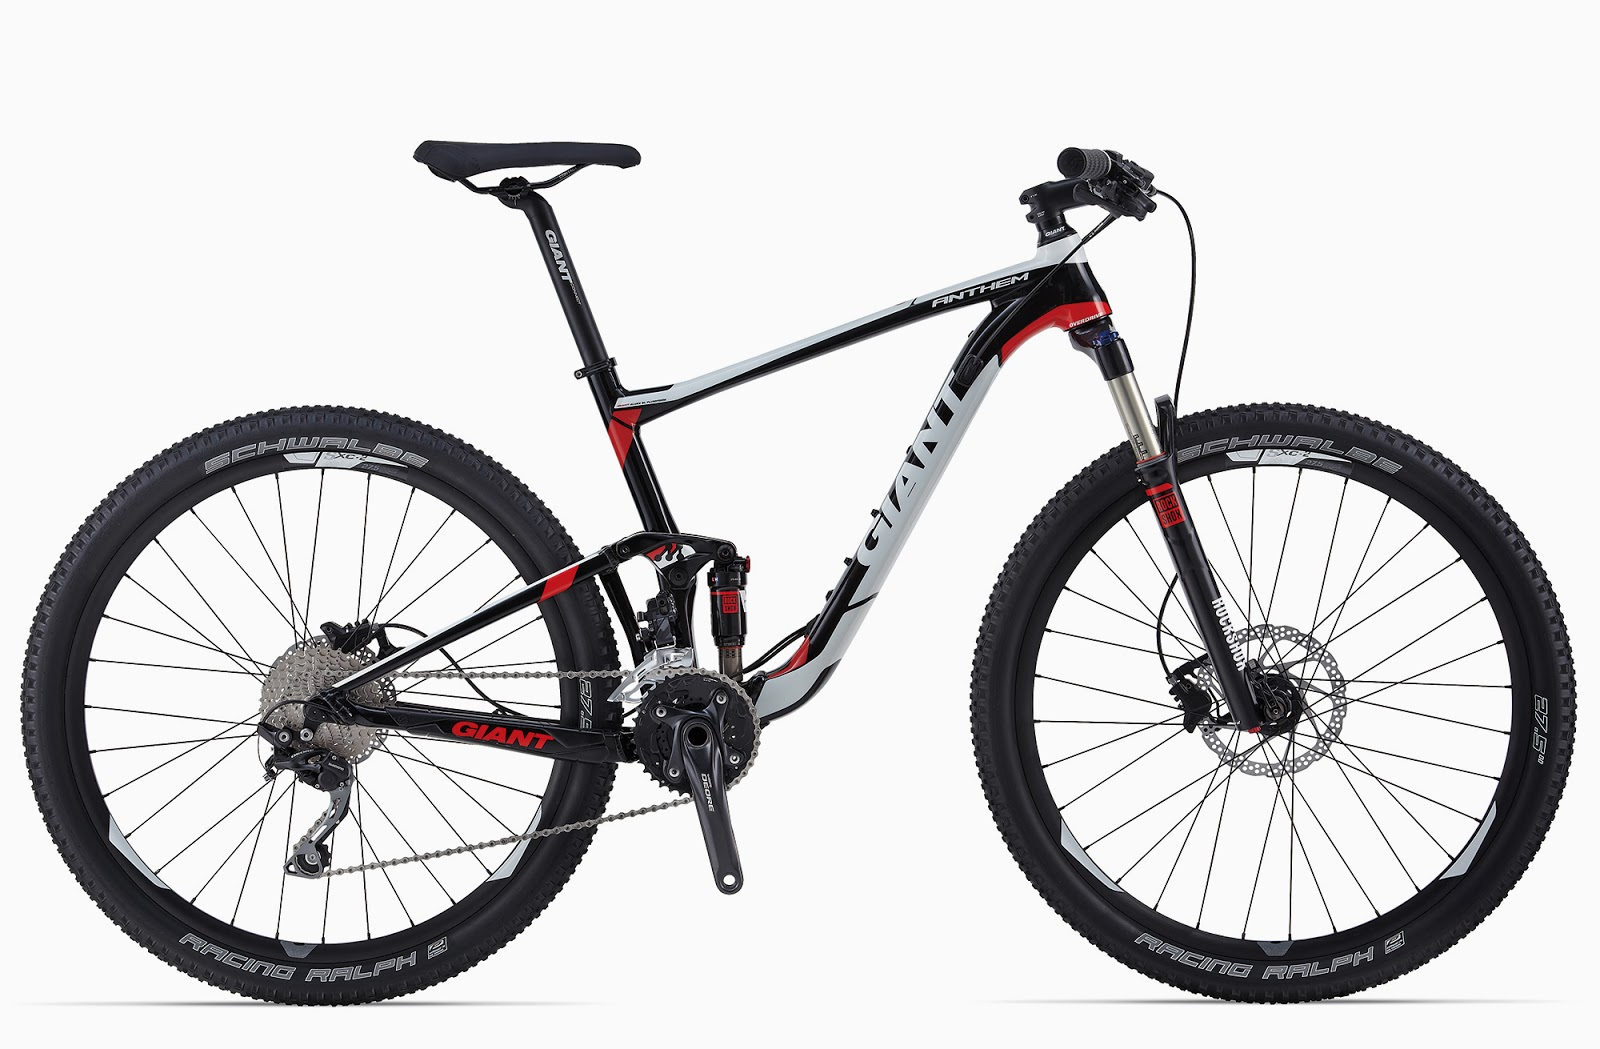 Century Cycles Blog: 2014 Giant Mountain Bikes are In!